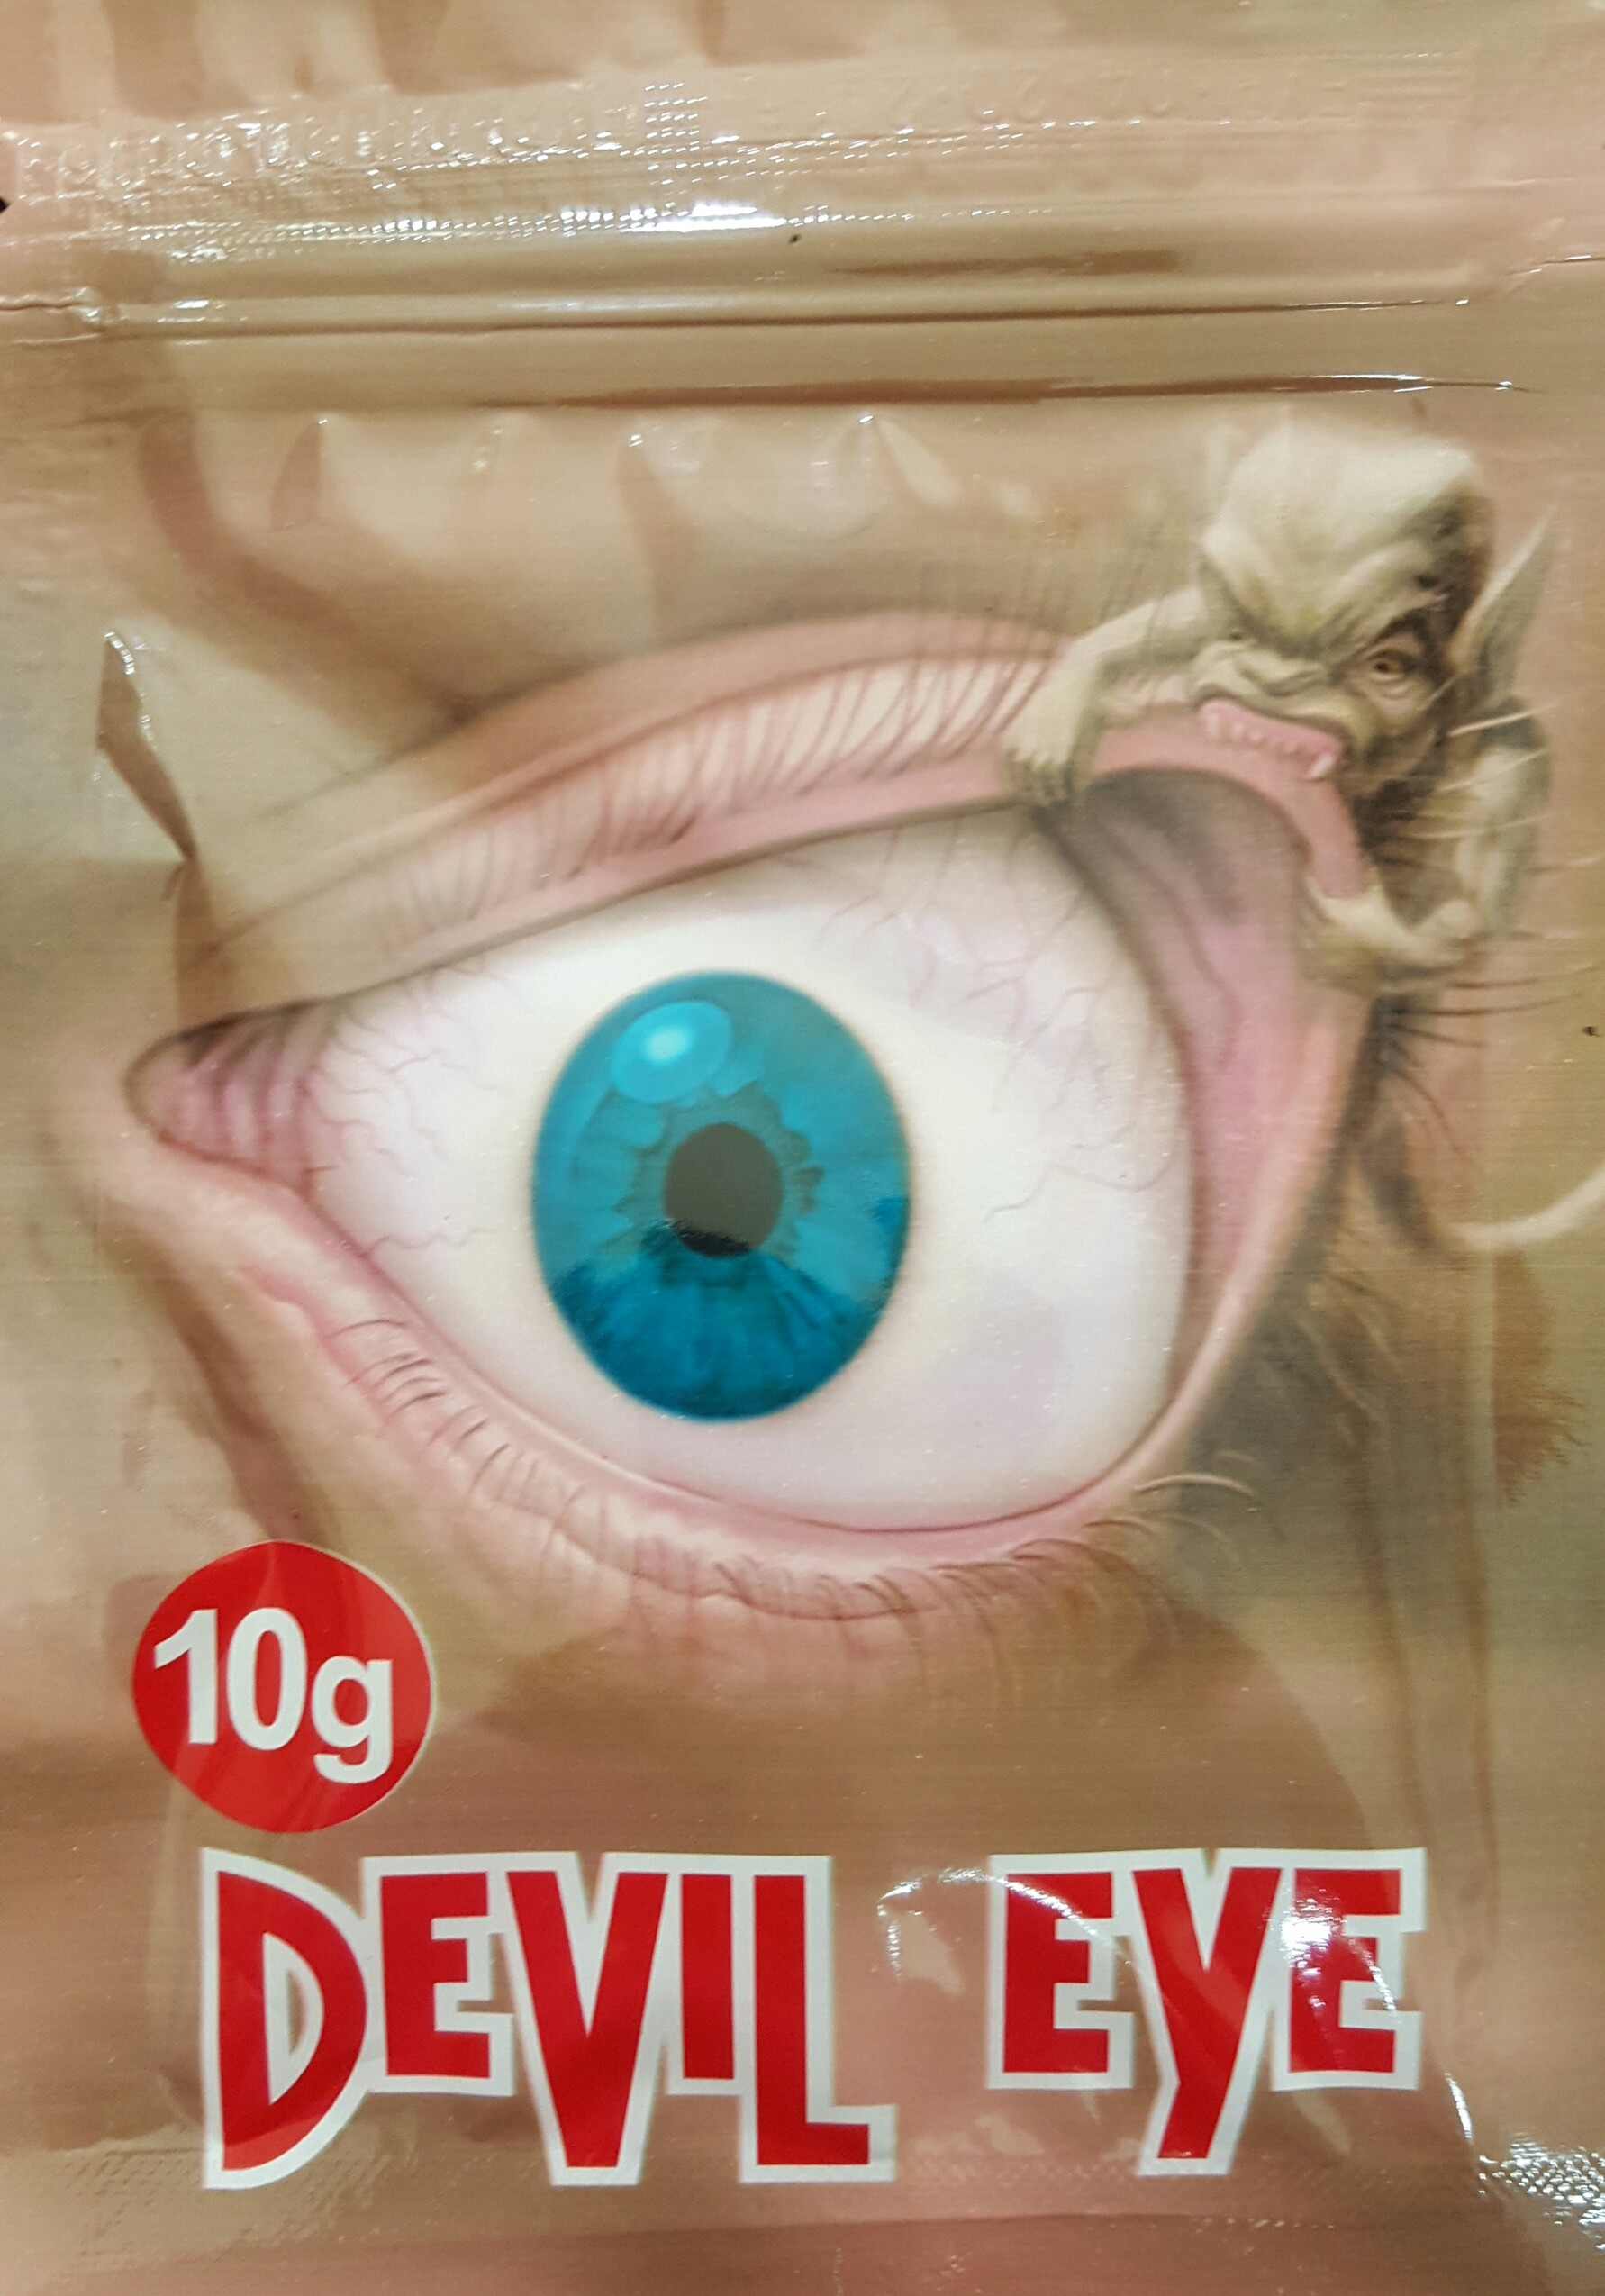 Devil Eye 10G in a Black Bag